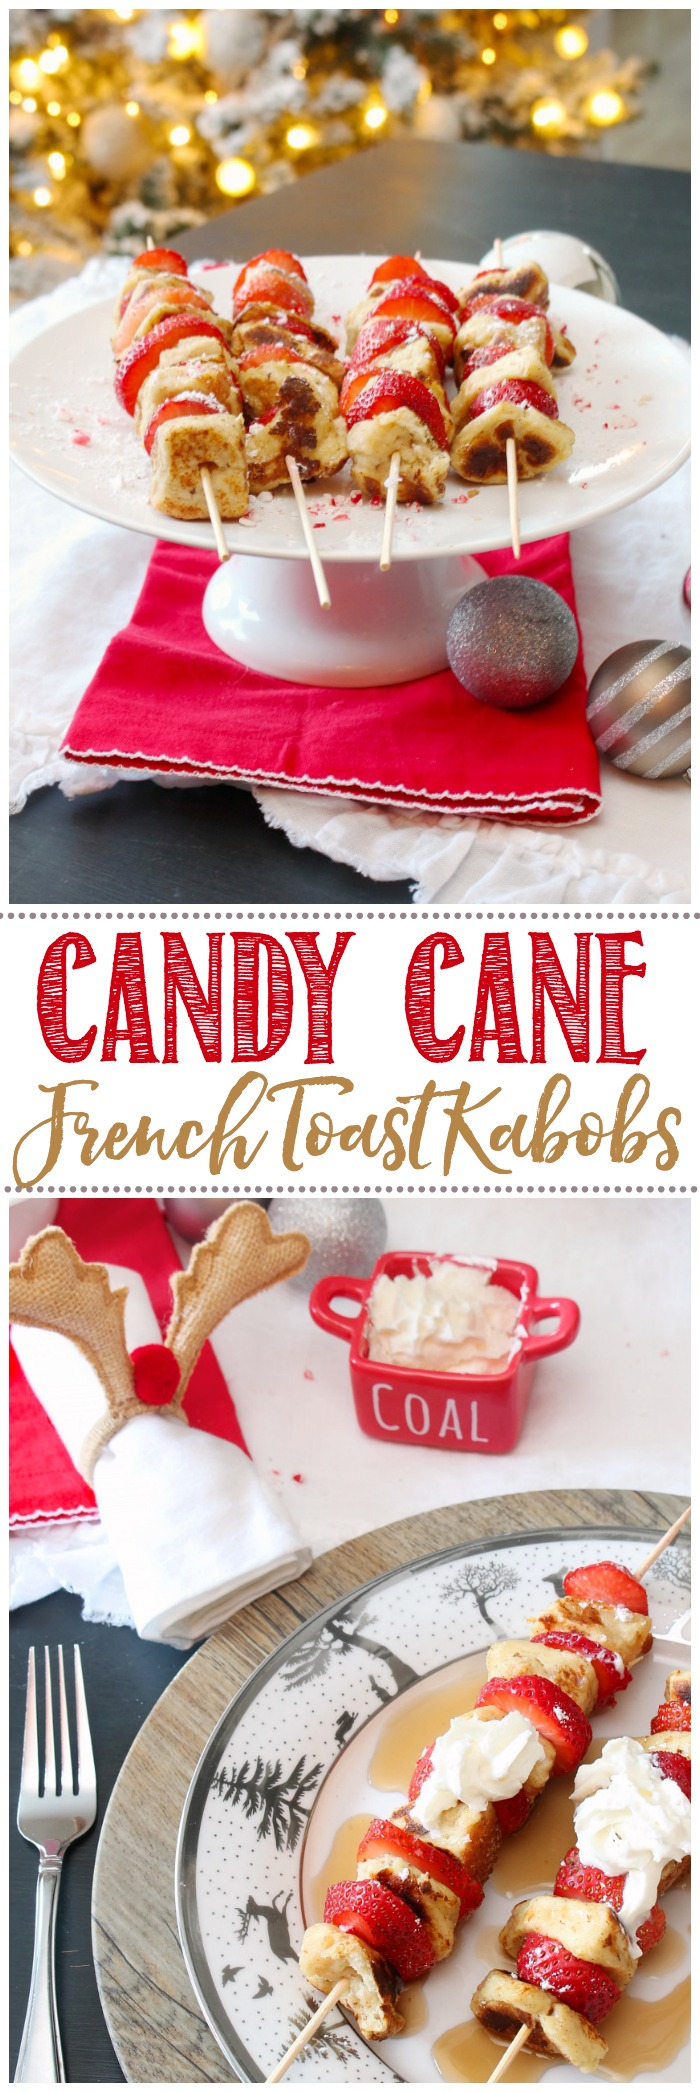 Candy Cane French Toast Kabobs Christmas Breakfast